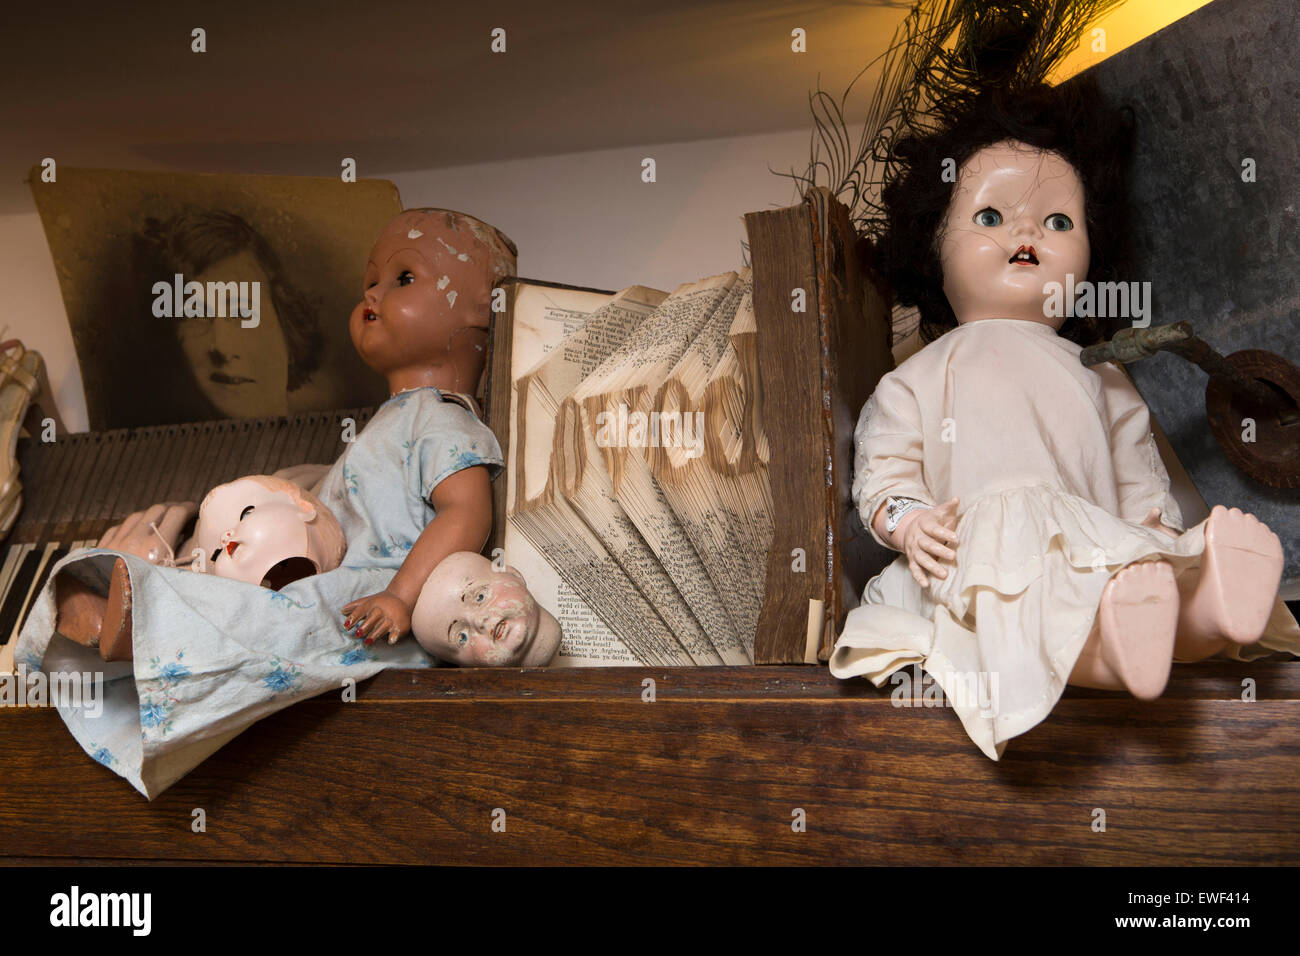 UK, England, Shropshire, Bridgnorth, Bank Street, A'tique shop, dolls and book folded into word 'loved' - Stock Image